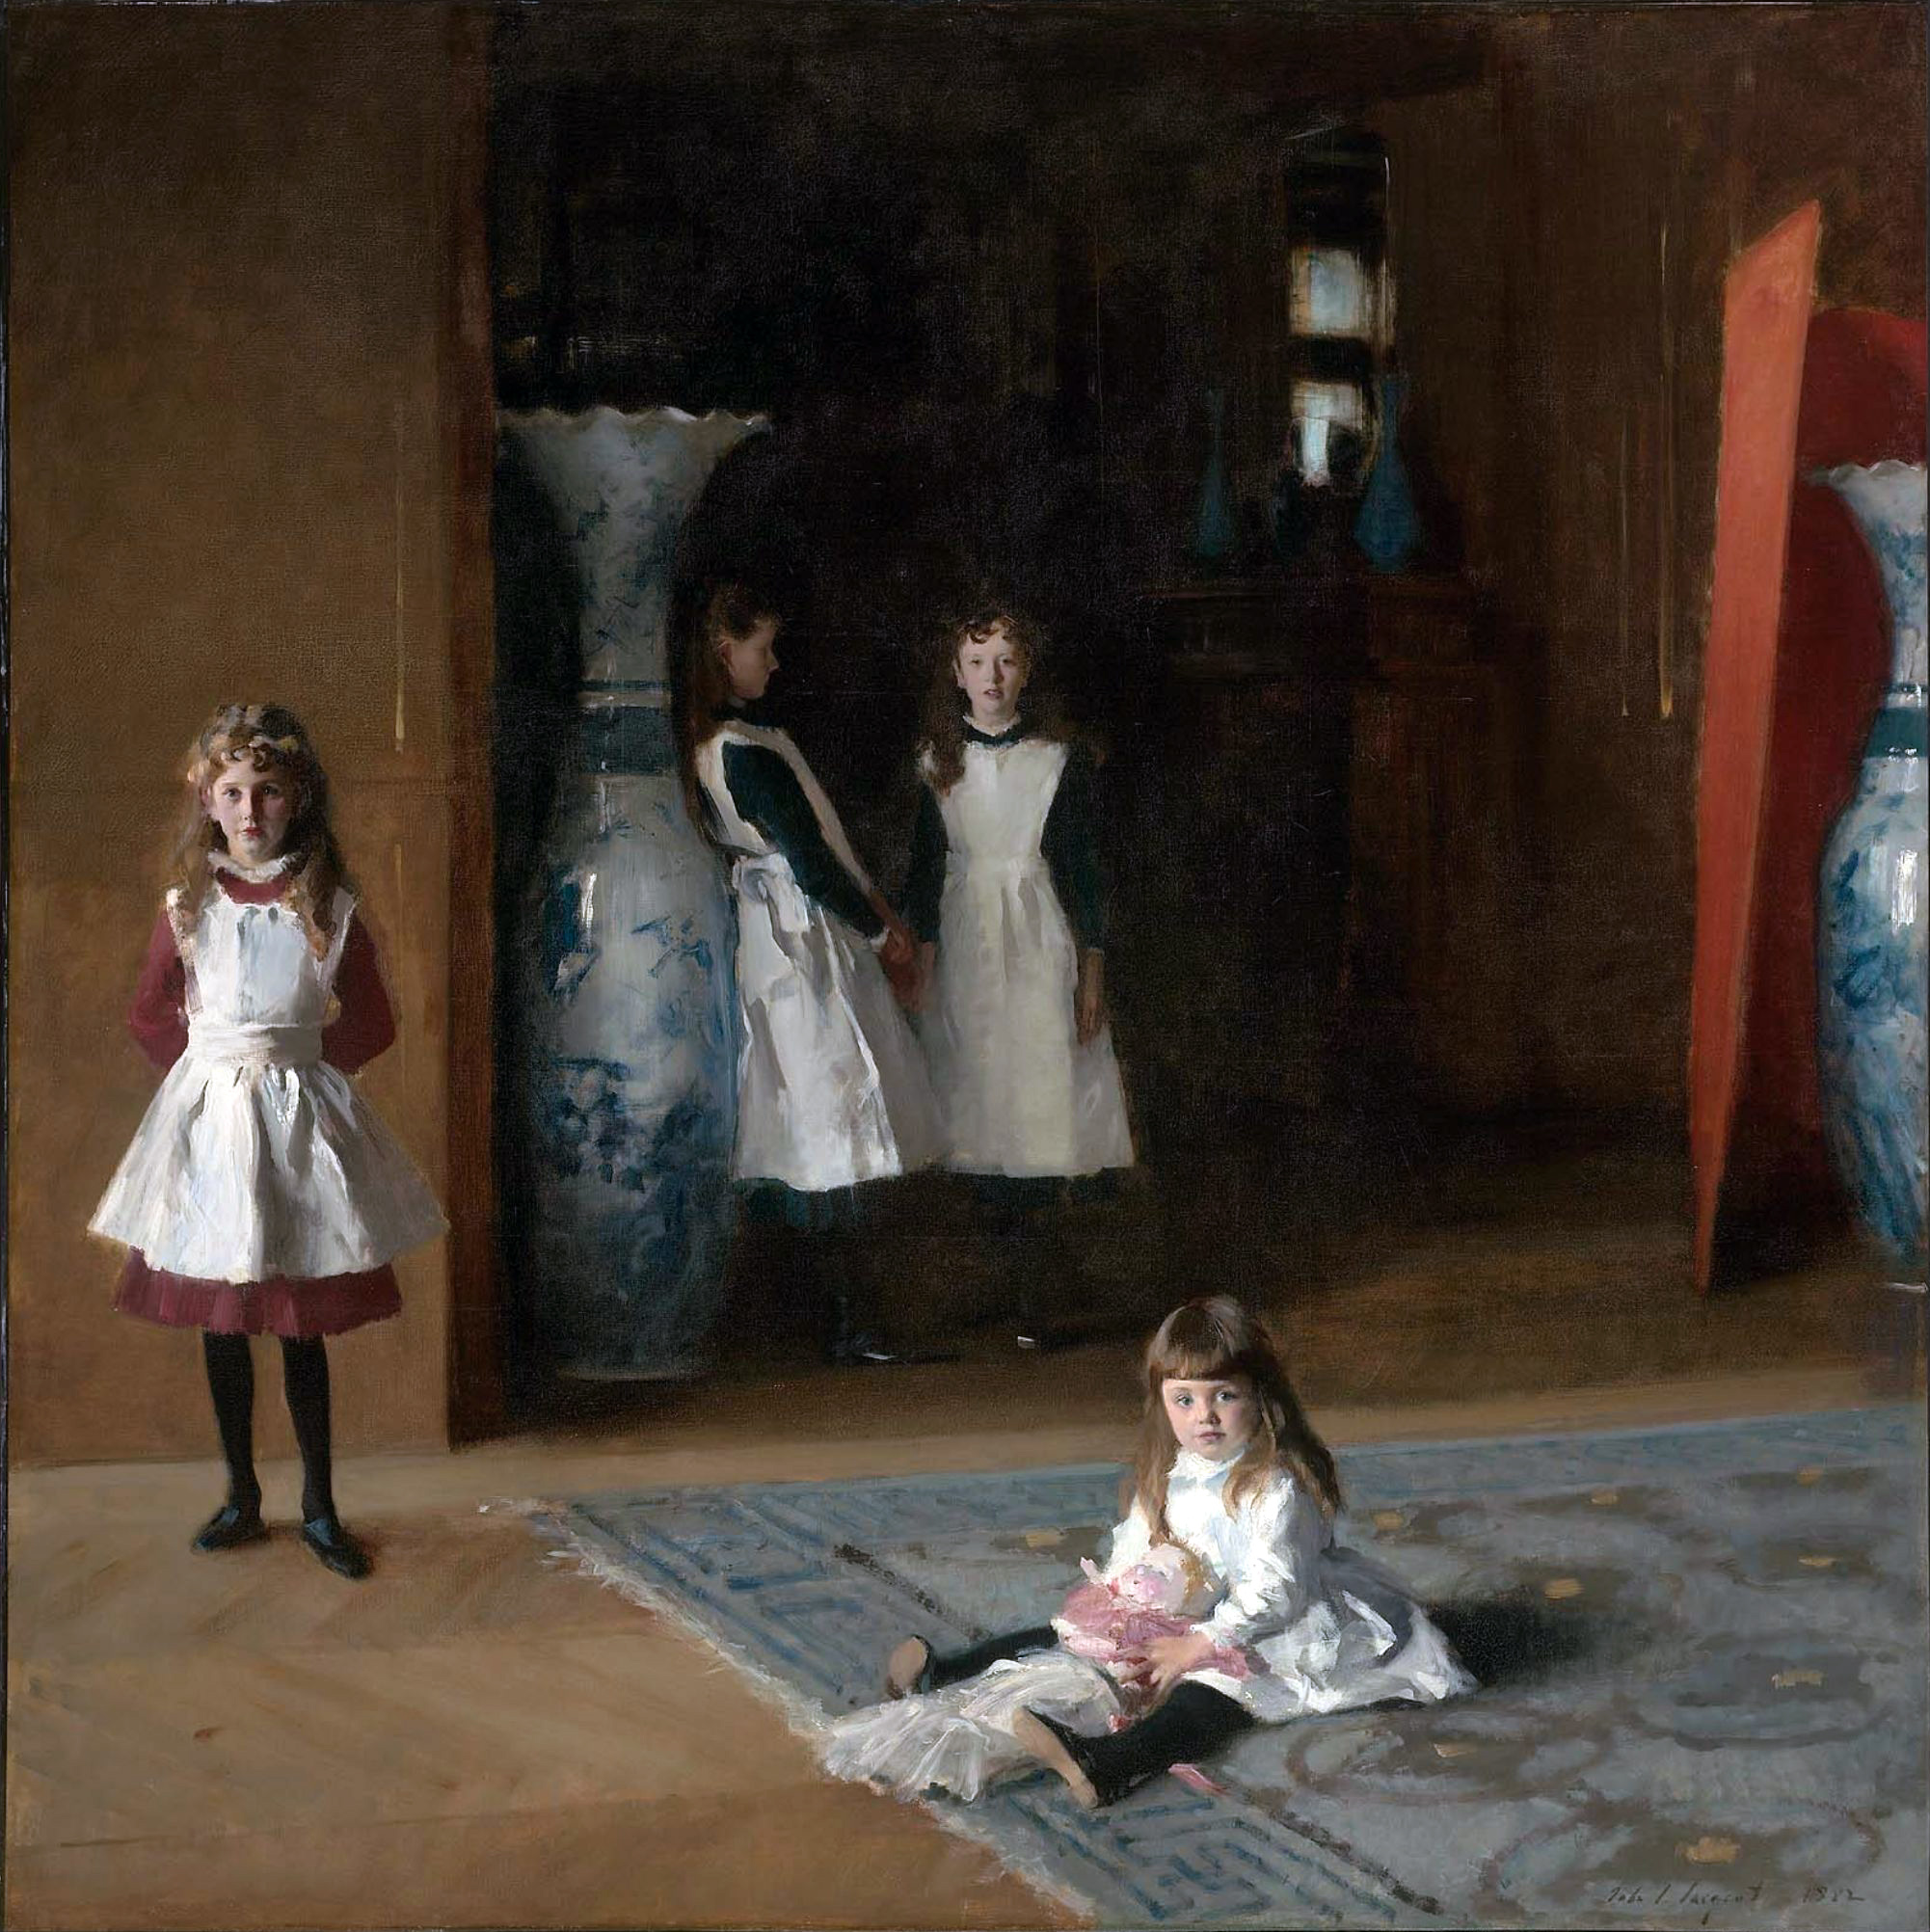 The_Daughters_of_Edward_Darley_Boit,_John_Singer_Sargent,_1882_(unfree_frame_crop).jpg